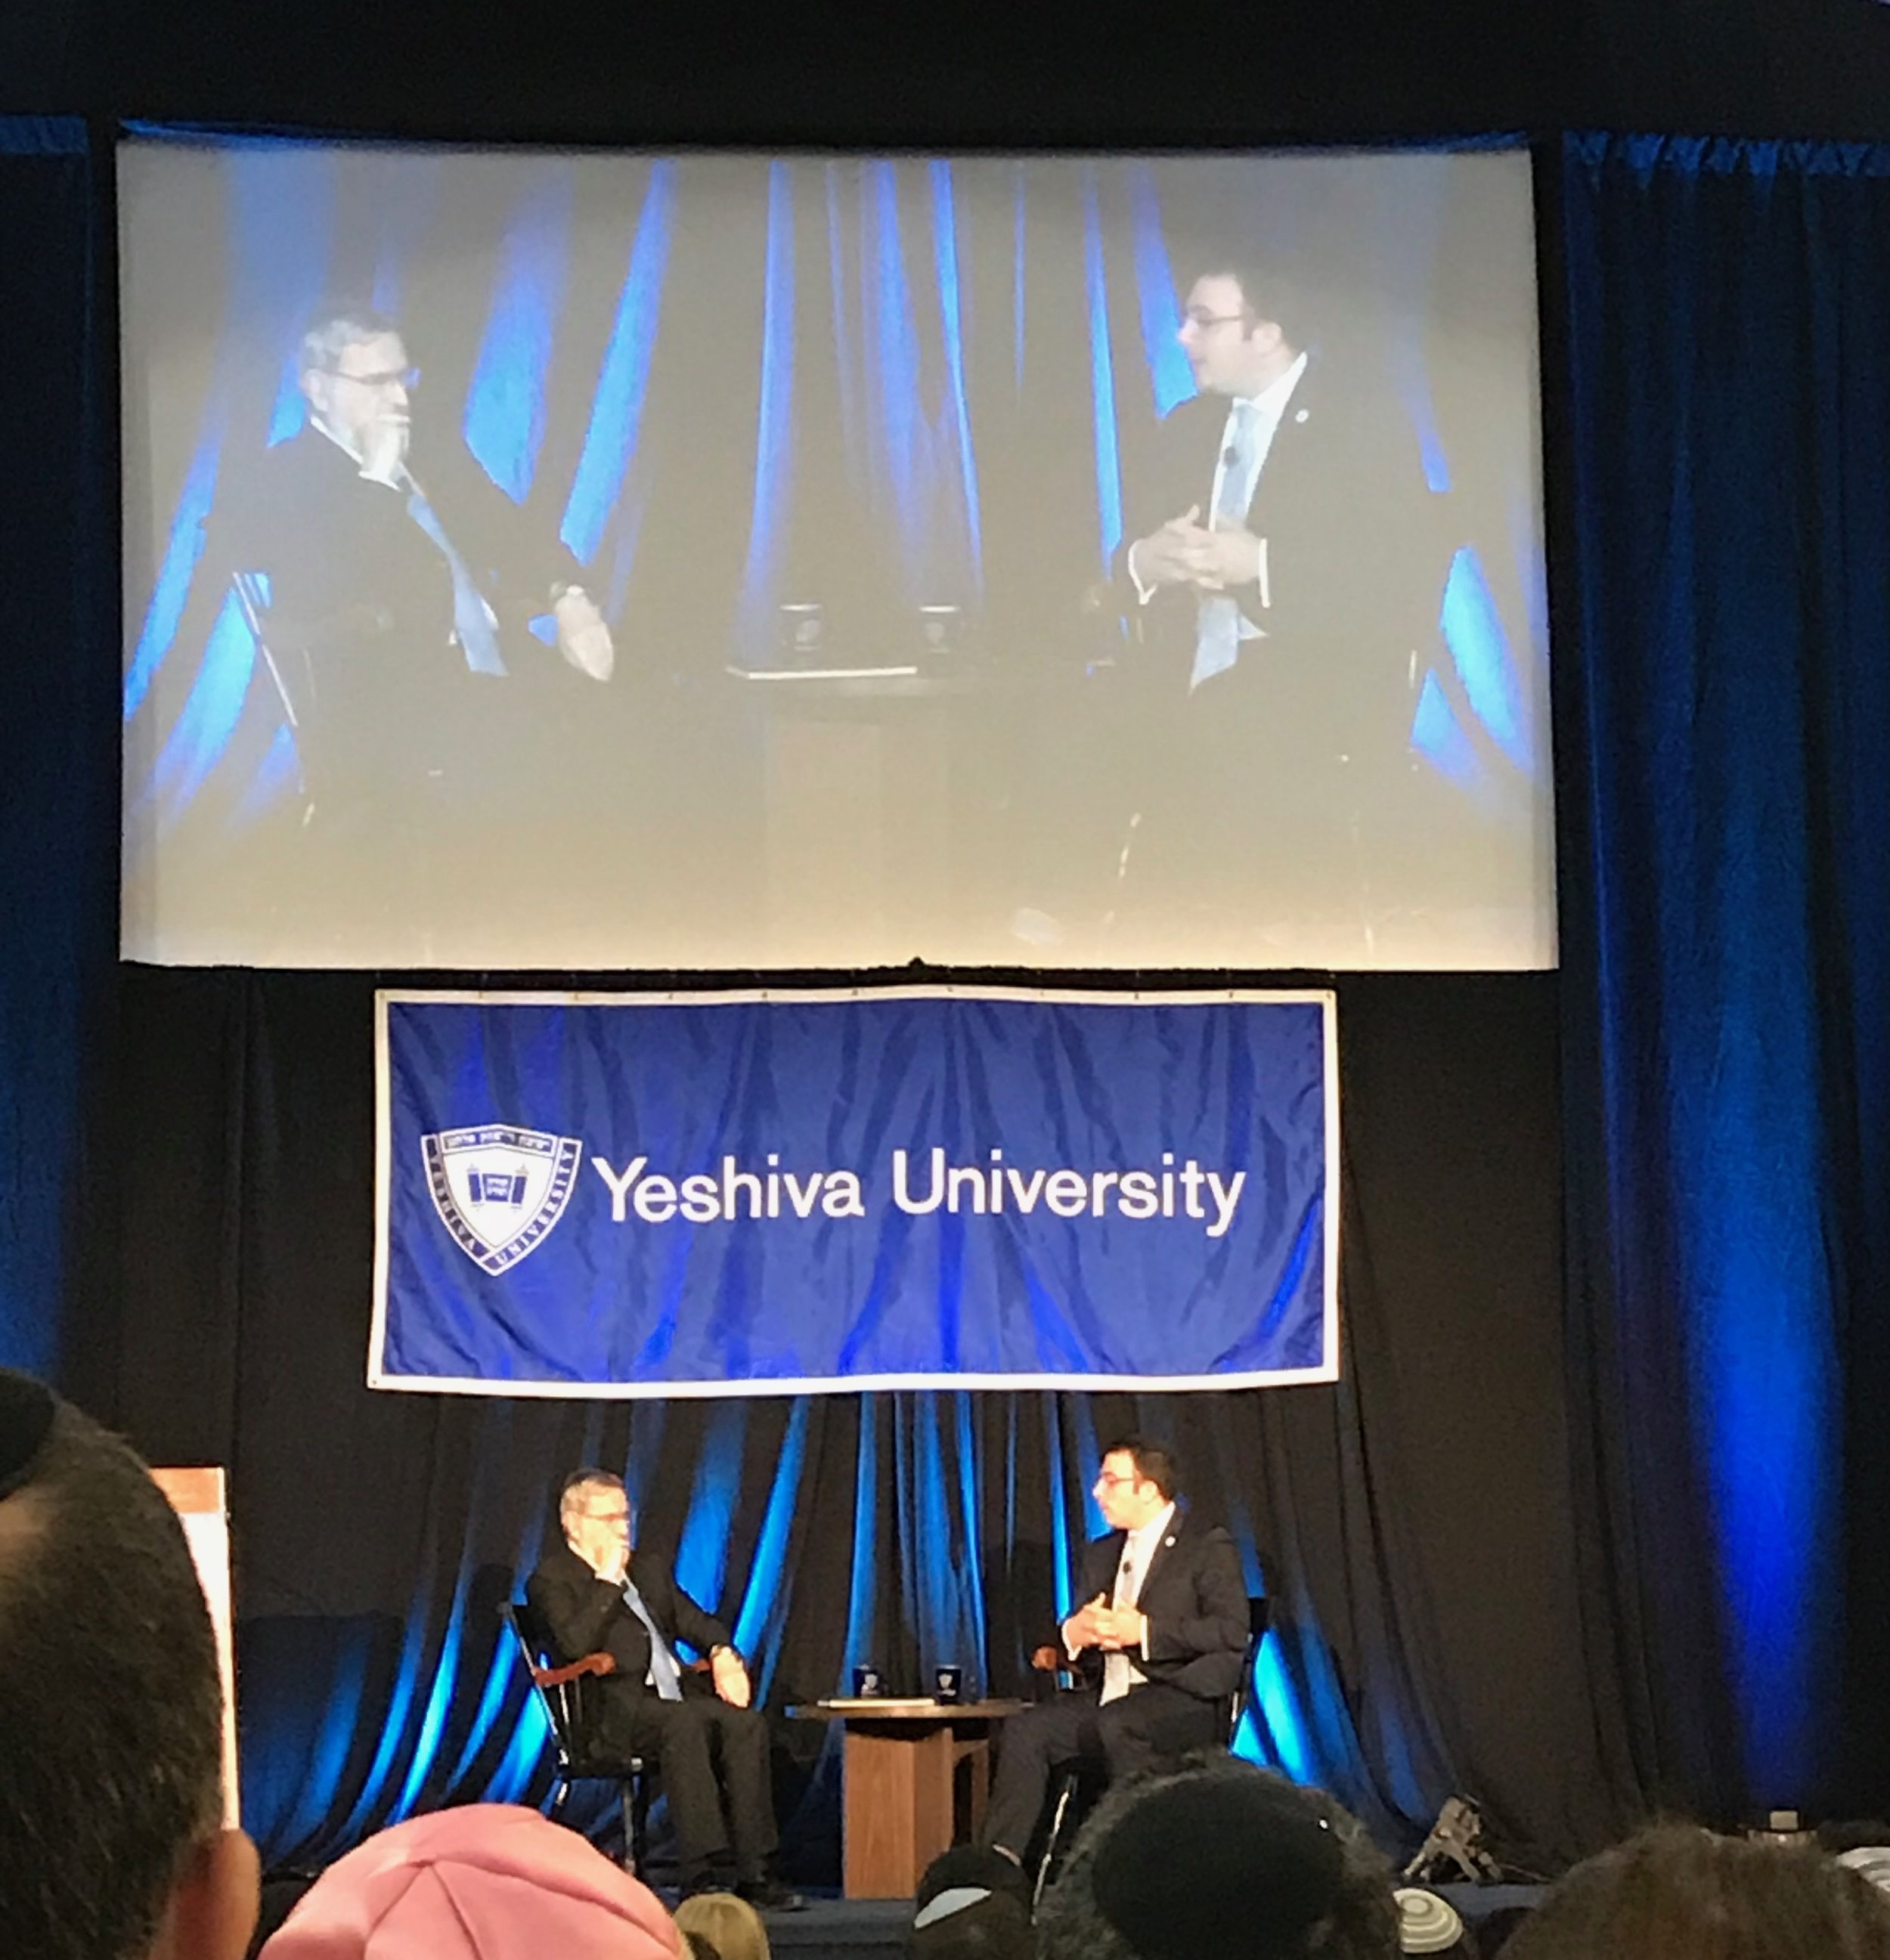 Rabbi Lord Jonathan Sacks, interviewed by Rabbi Dr. Ari Berman, President of Yeshiva University on Sunday, October 22nd, 2017.